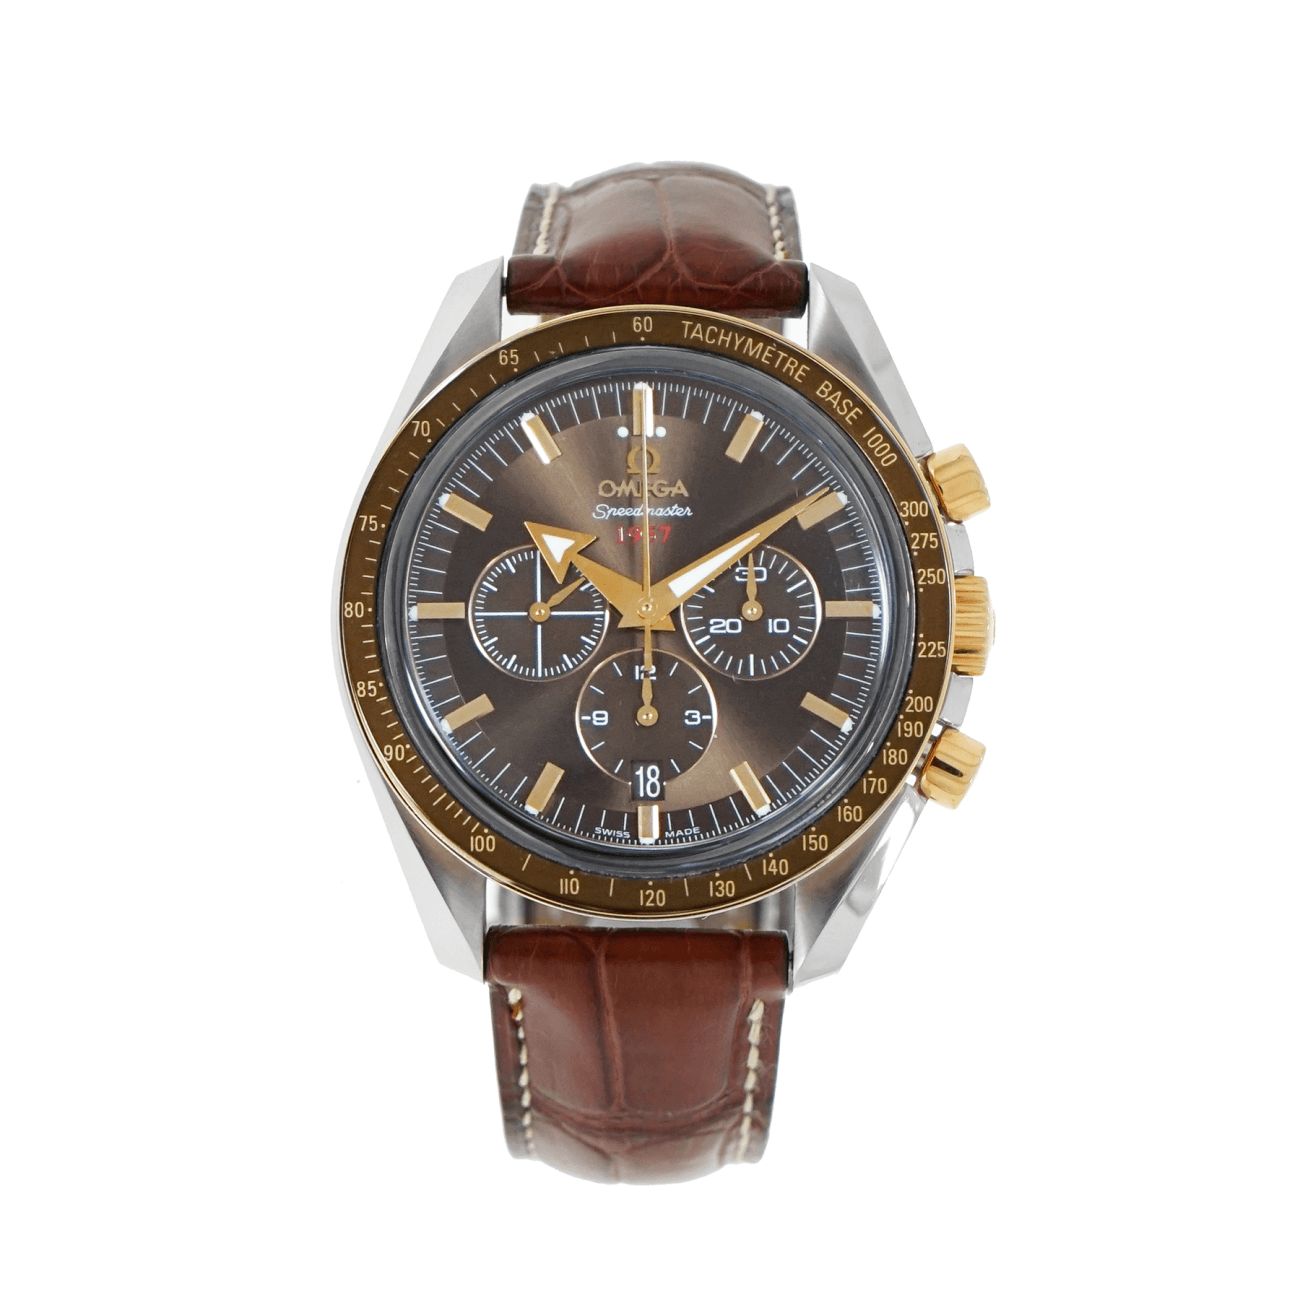 Pre-Owned Omega Watches - Speedmaster Broad Arrow 1957 Chronograph | Manfredi Jewels